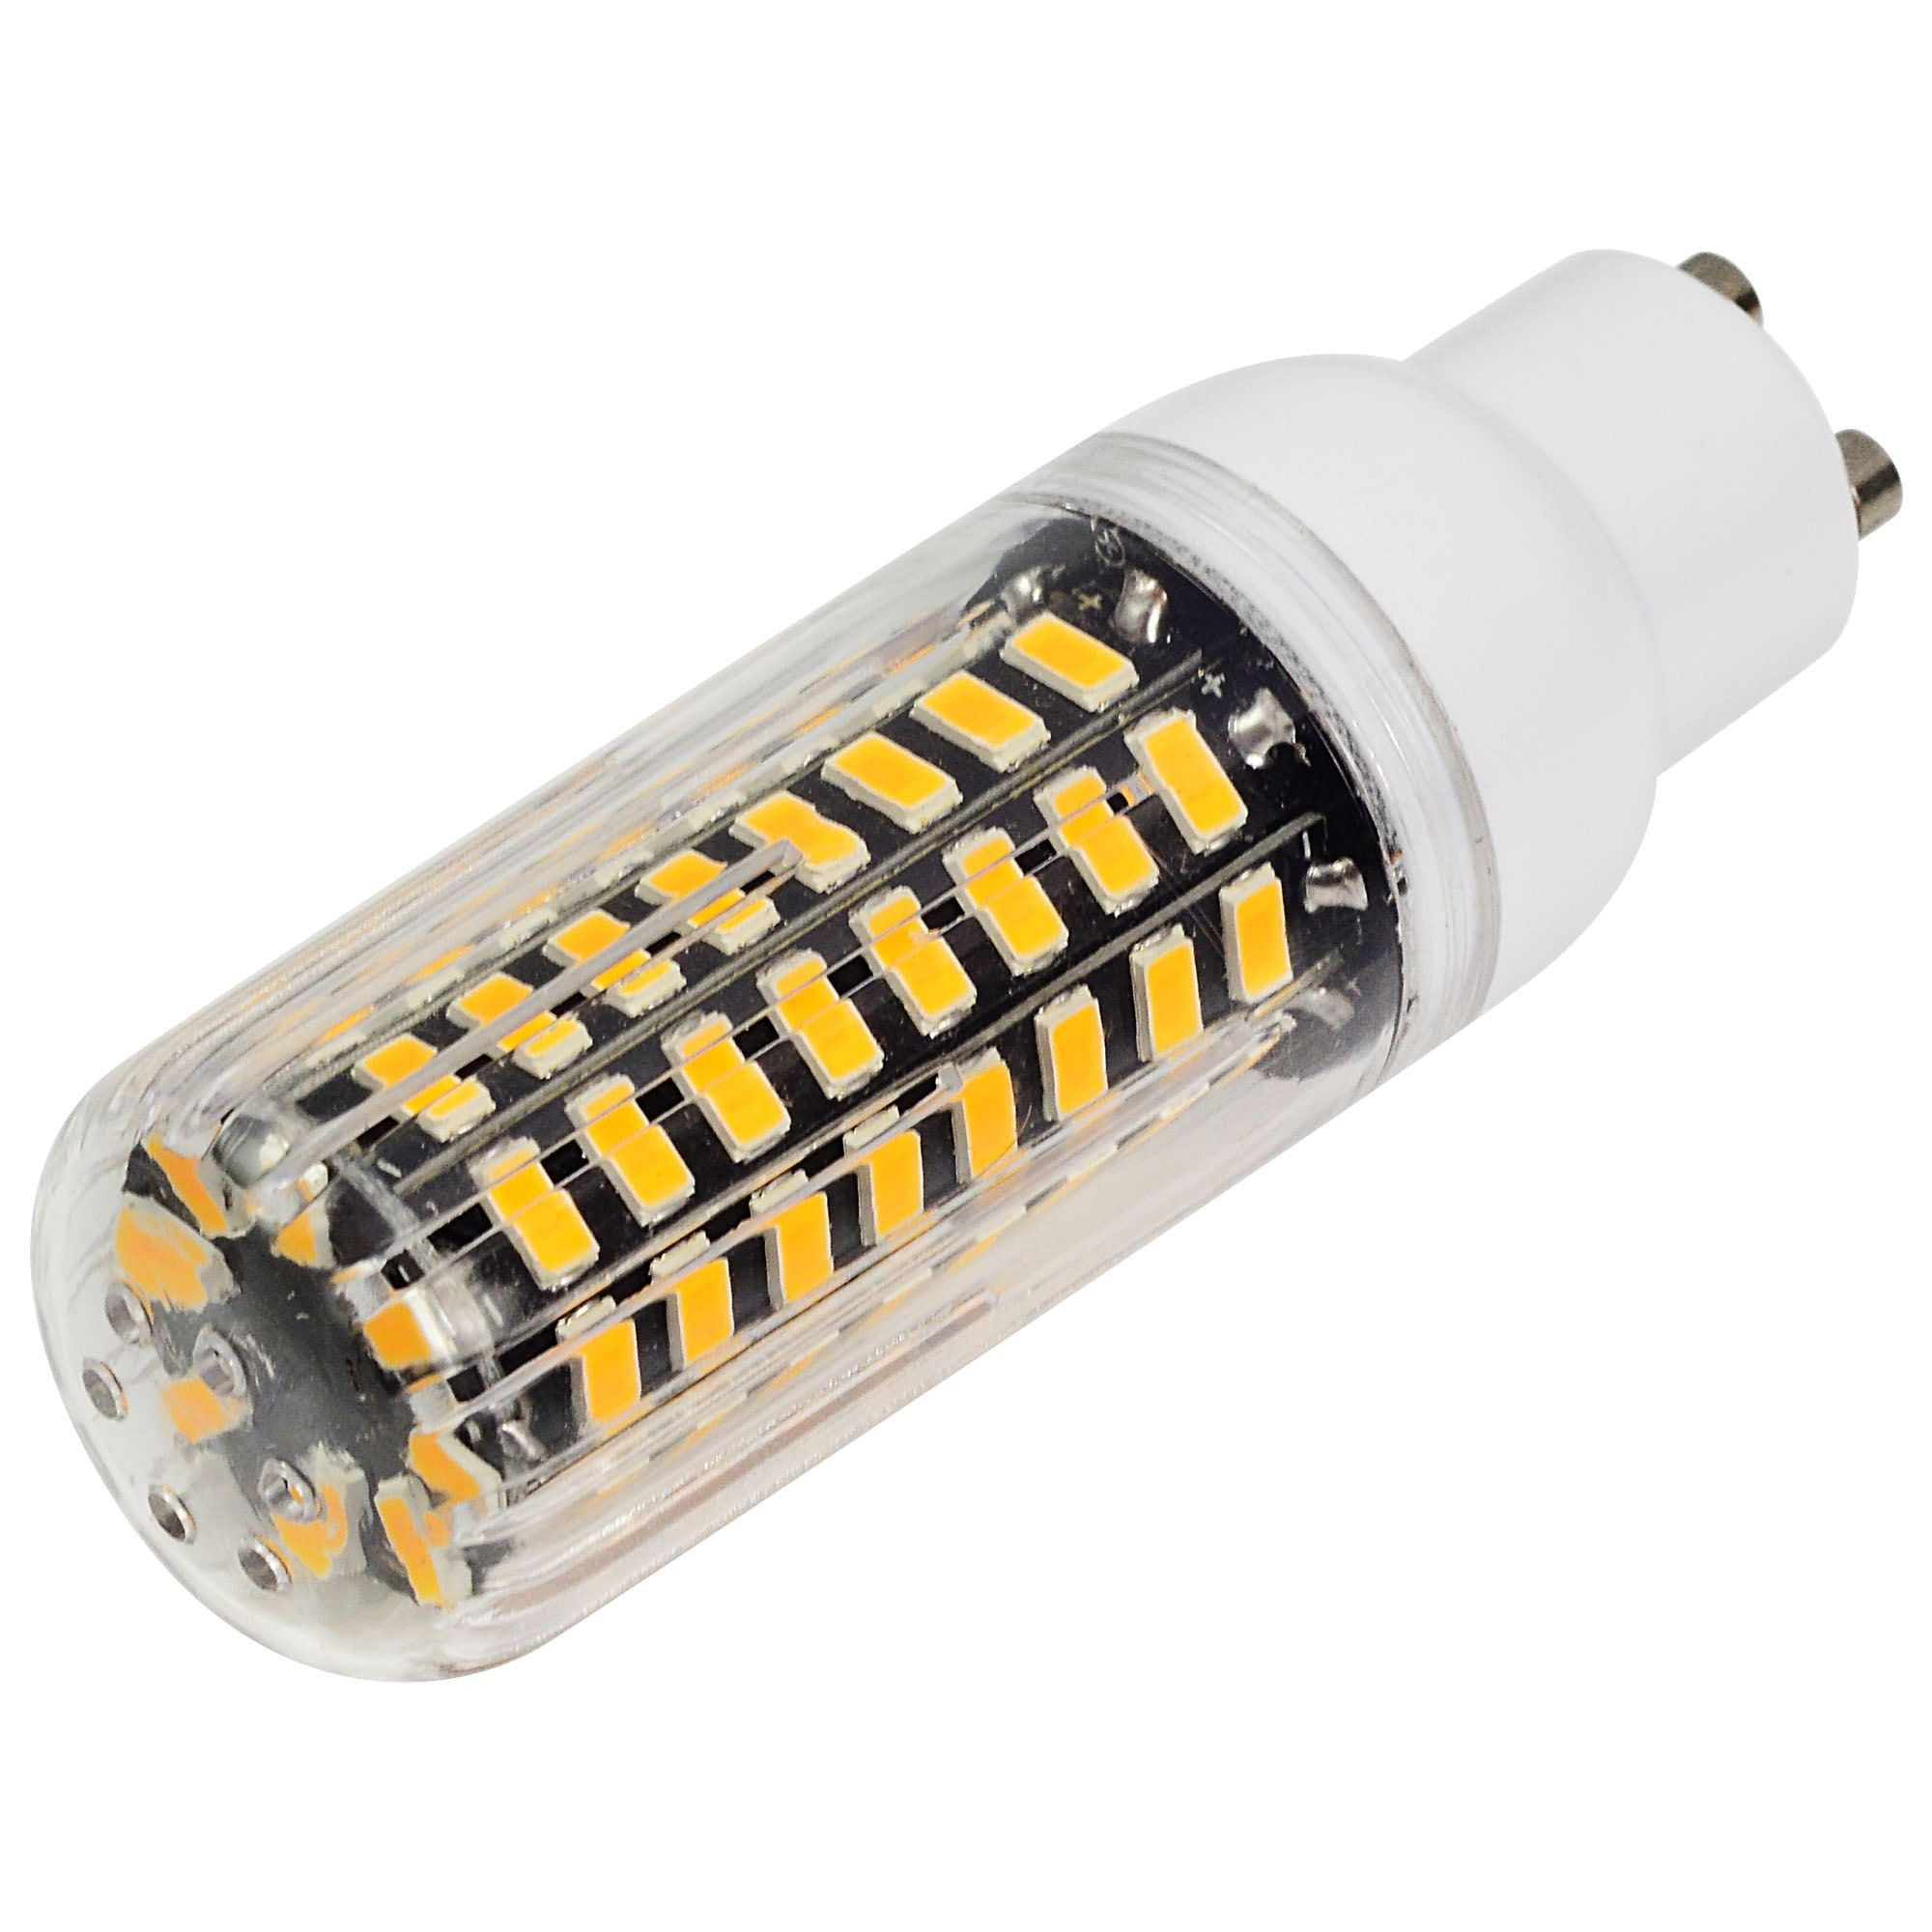 Mengsled Mengs Gu10 11w Led Corn Light 80x 5733 Smd Led Bulb Lamp In Warm White Cool White